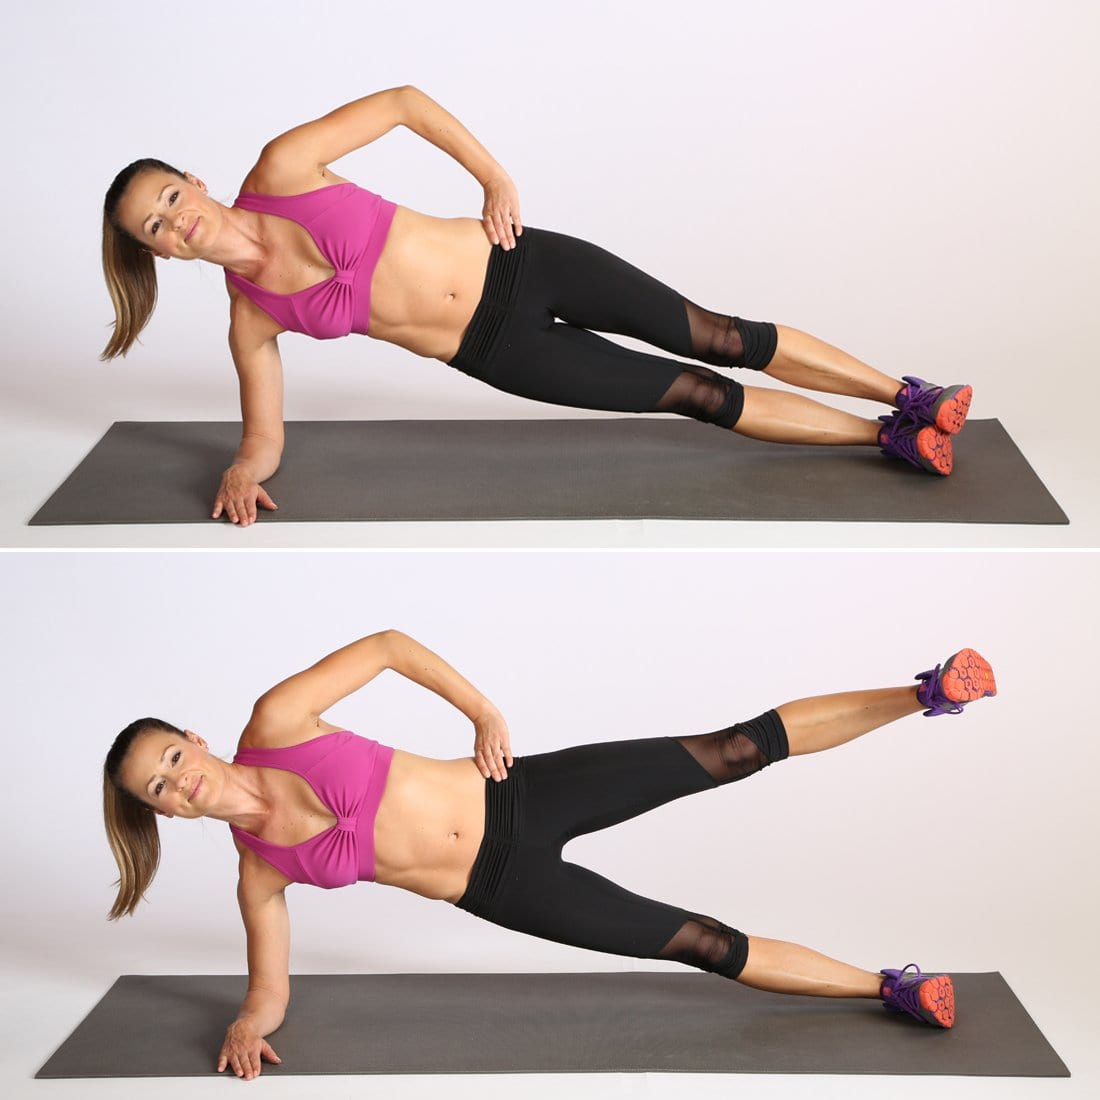 woman performing the side plank leg raise exercise